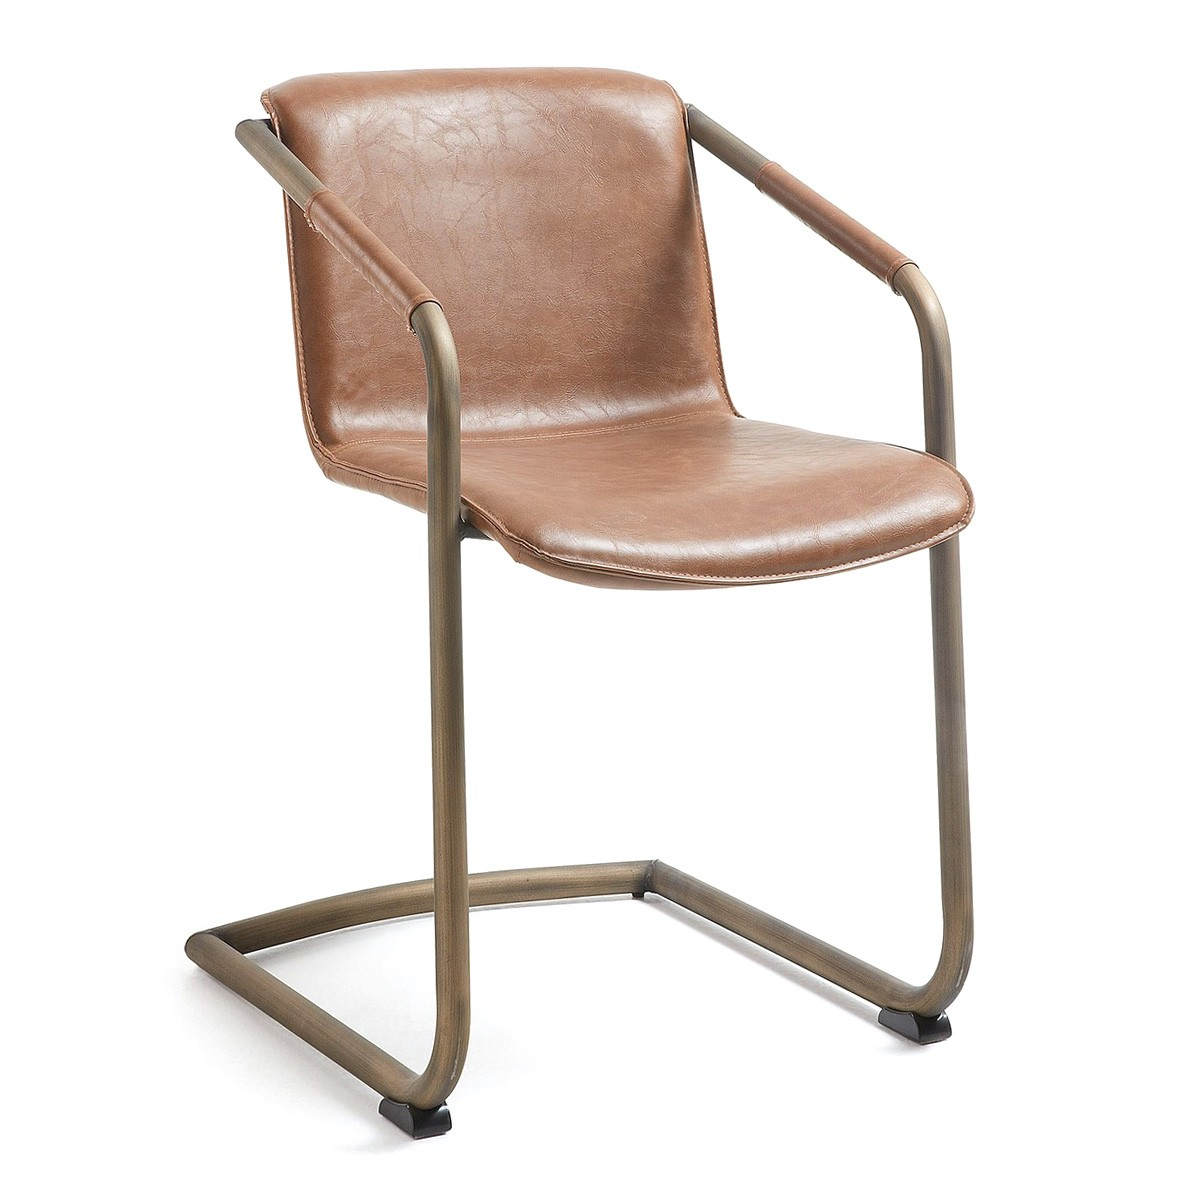 Mooney PU Leather Swing Leg Dining Armchair, Tan